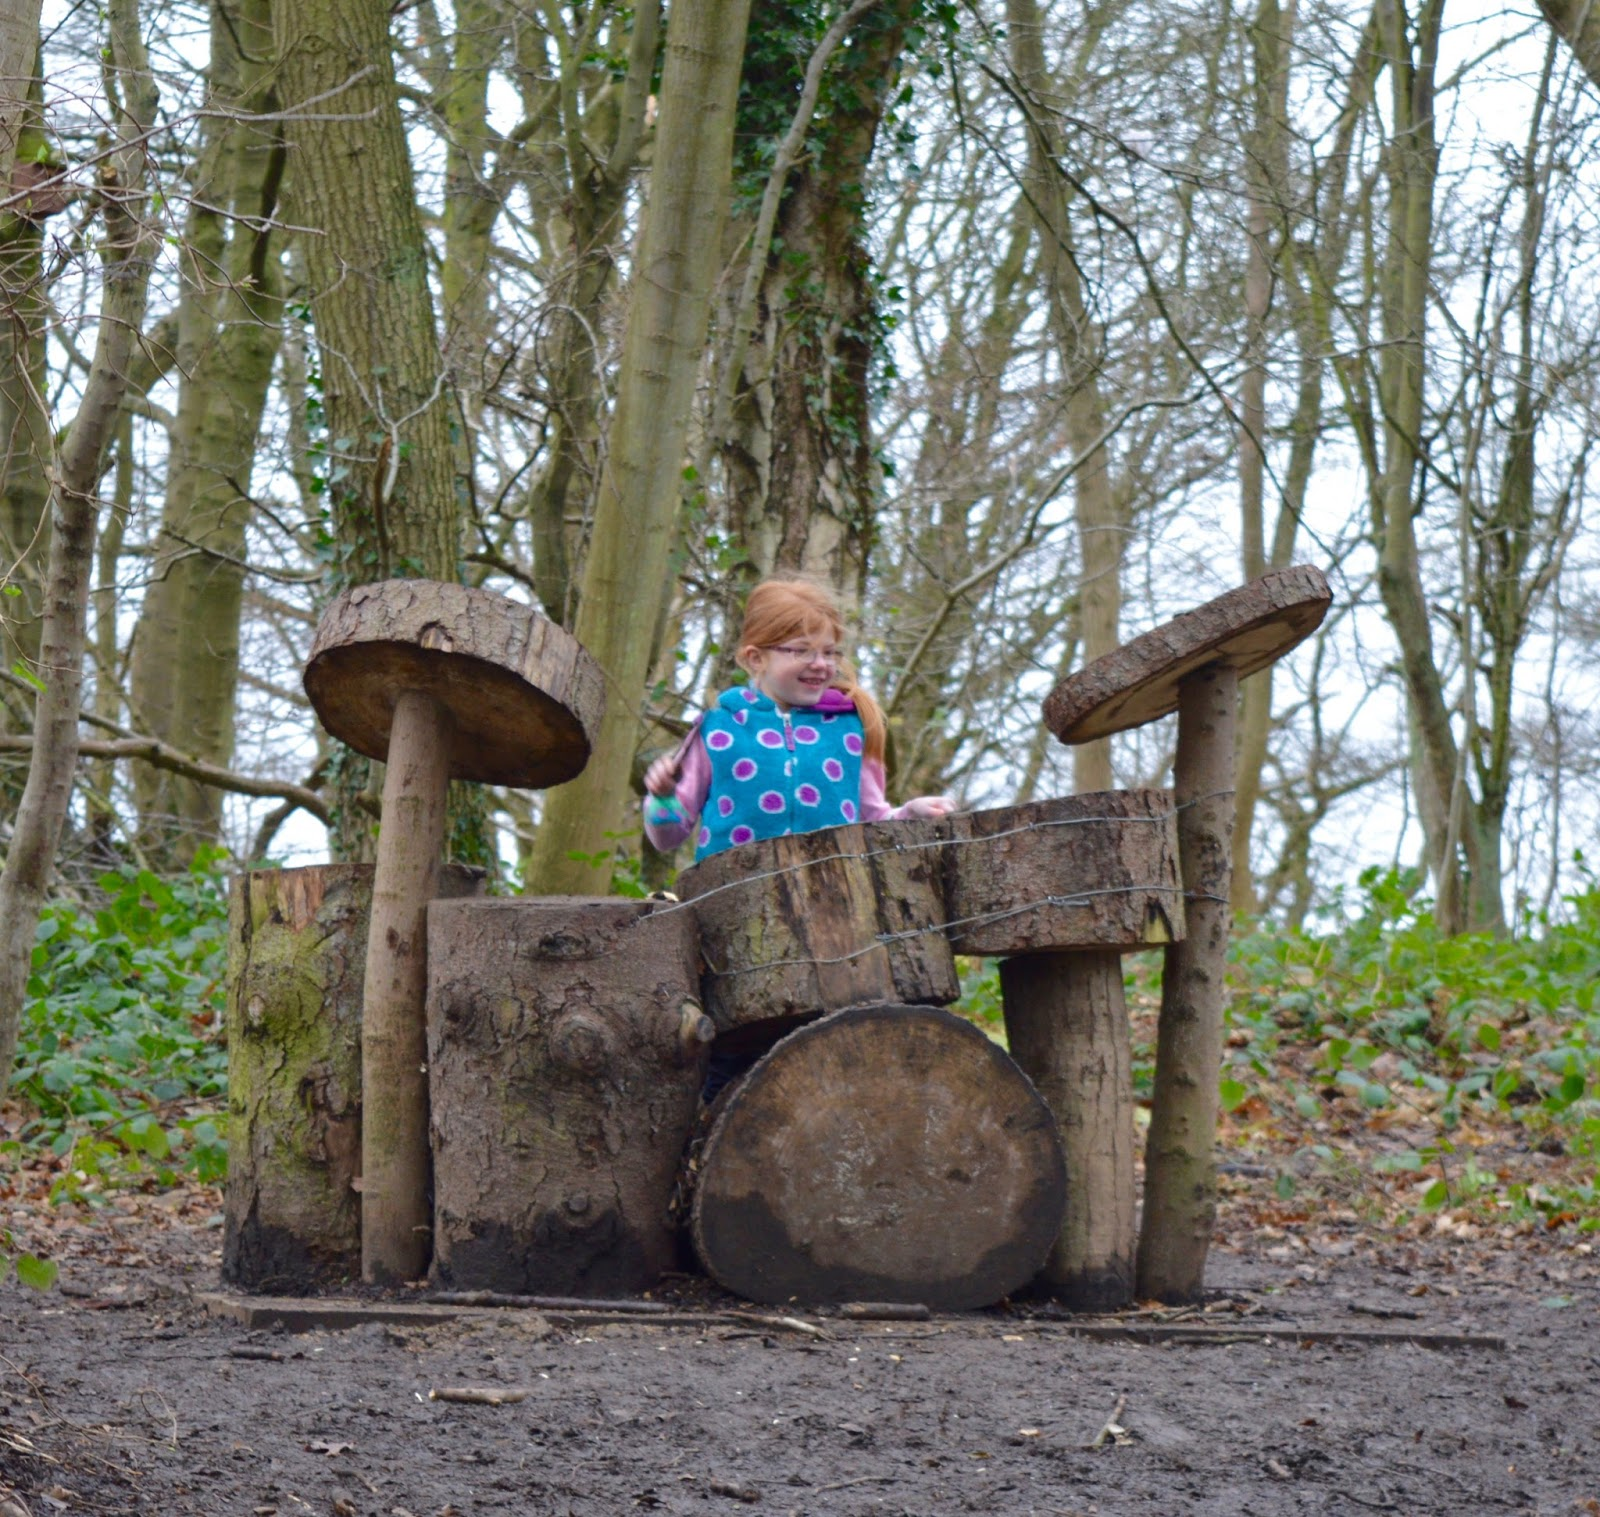 Our Visit to Plessey Woods - A FREE day out in Northumberland. It was very muddy and the perfect chance for Harry to put his GORE-TEX shoes through their paces - woodland tree drum kit